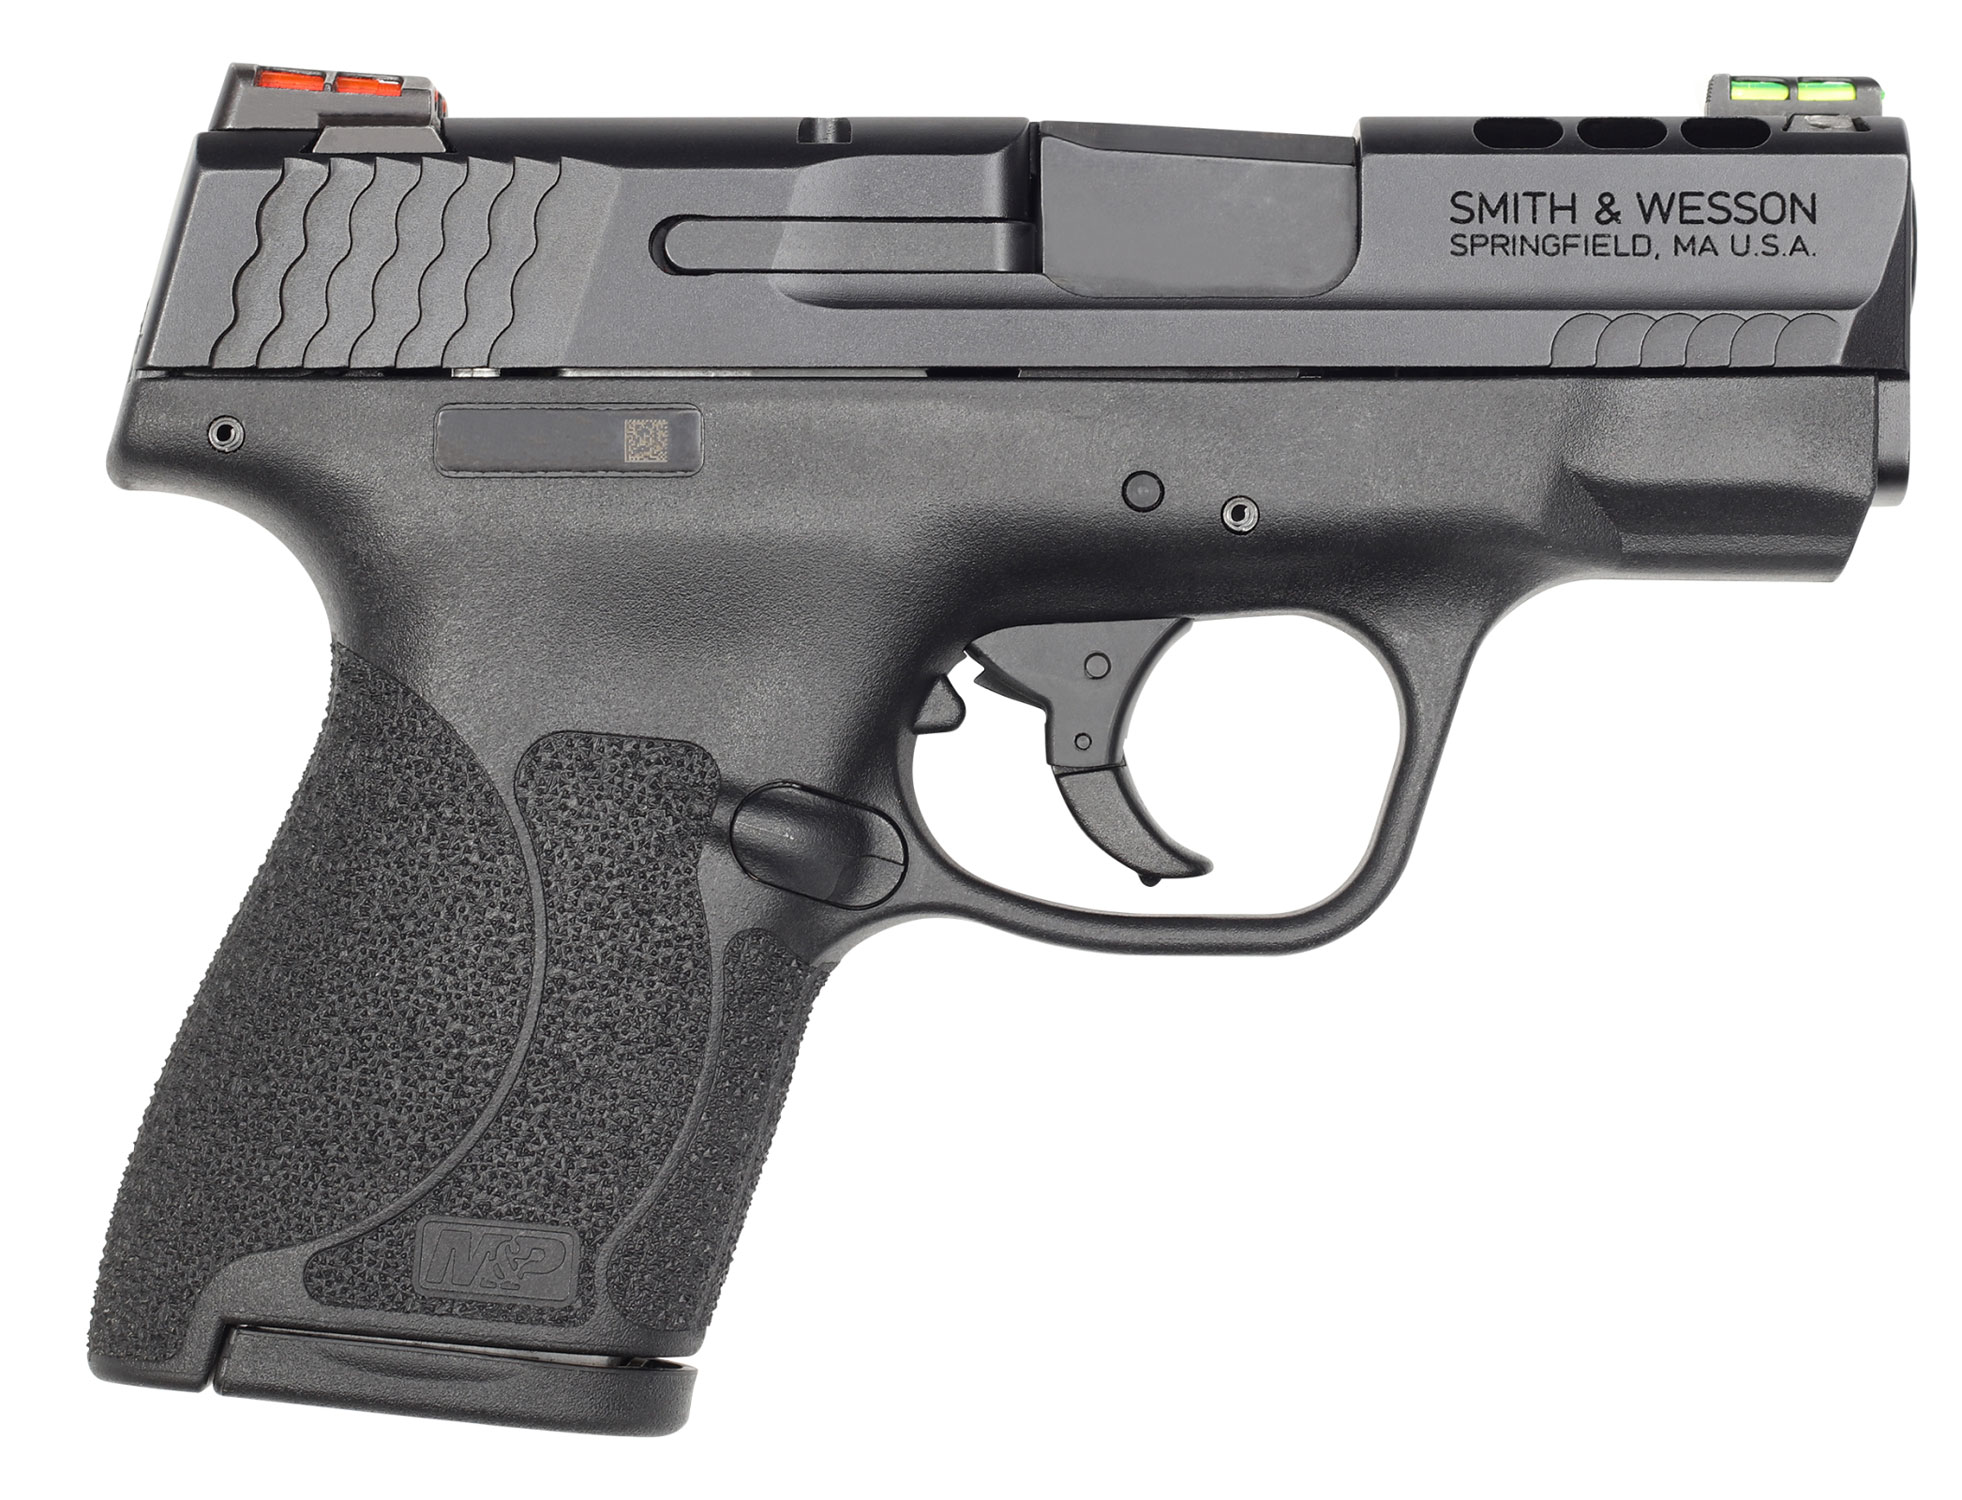 Smith & Wesson 12471 Performance Center M&P Shield M2.0  Every Day Carry Kit 9mm Luger Double 3.1